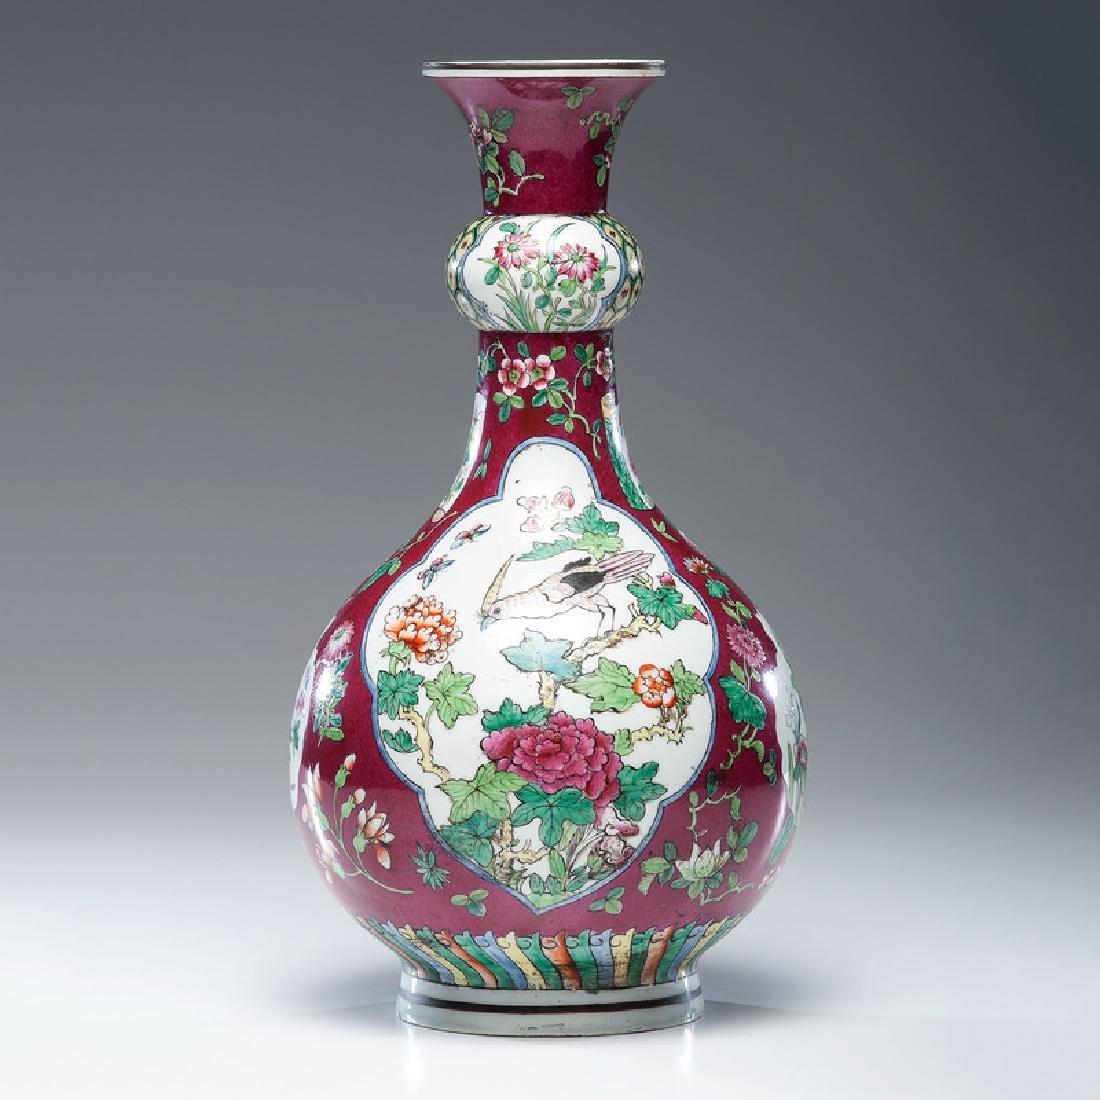 Chinese Porcelain Vase with Floral and Bird Reserves